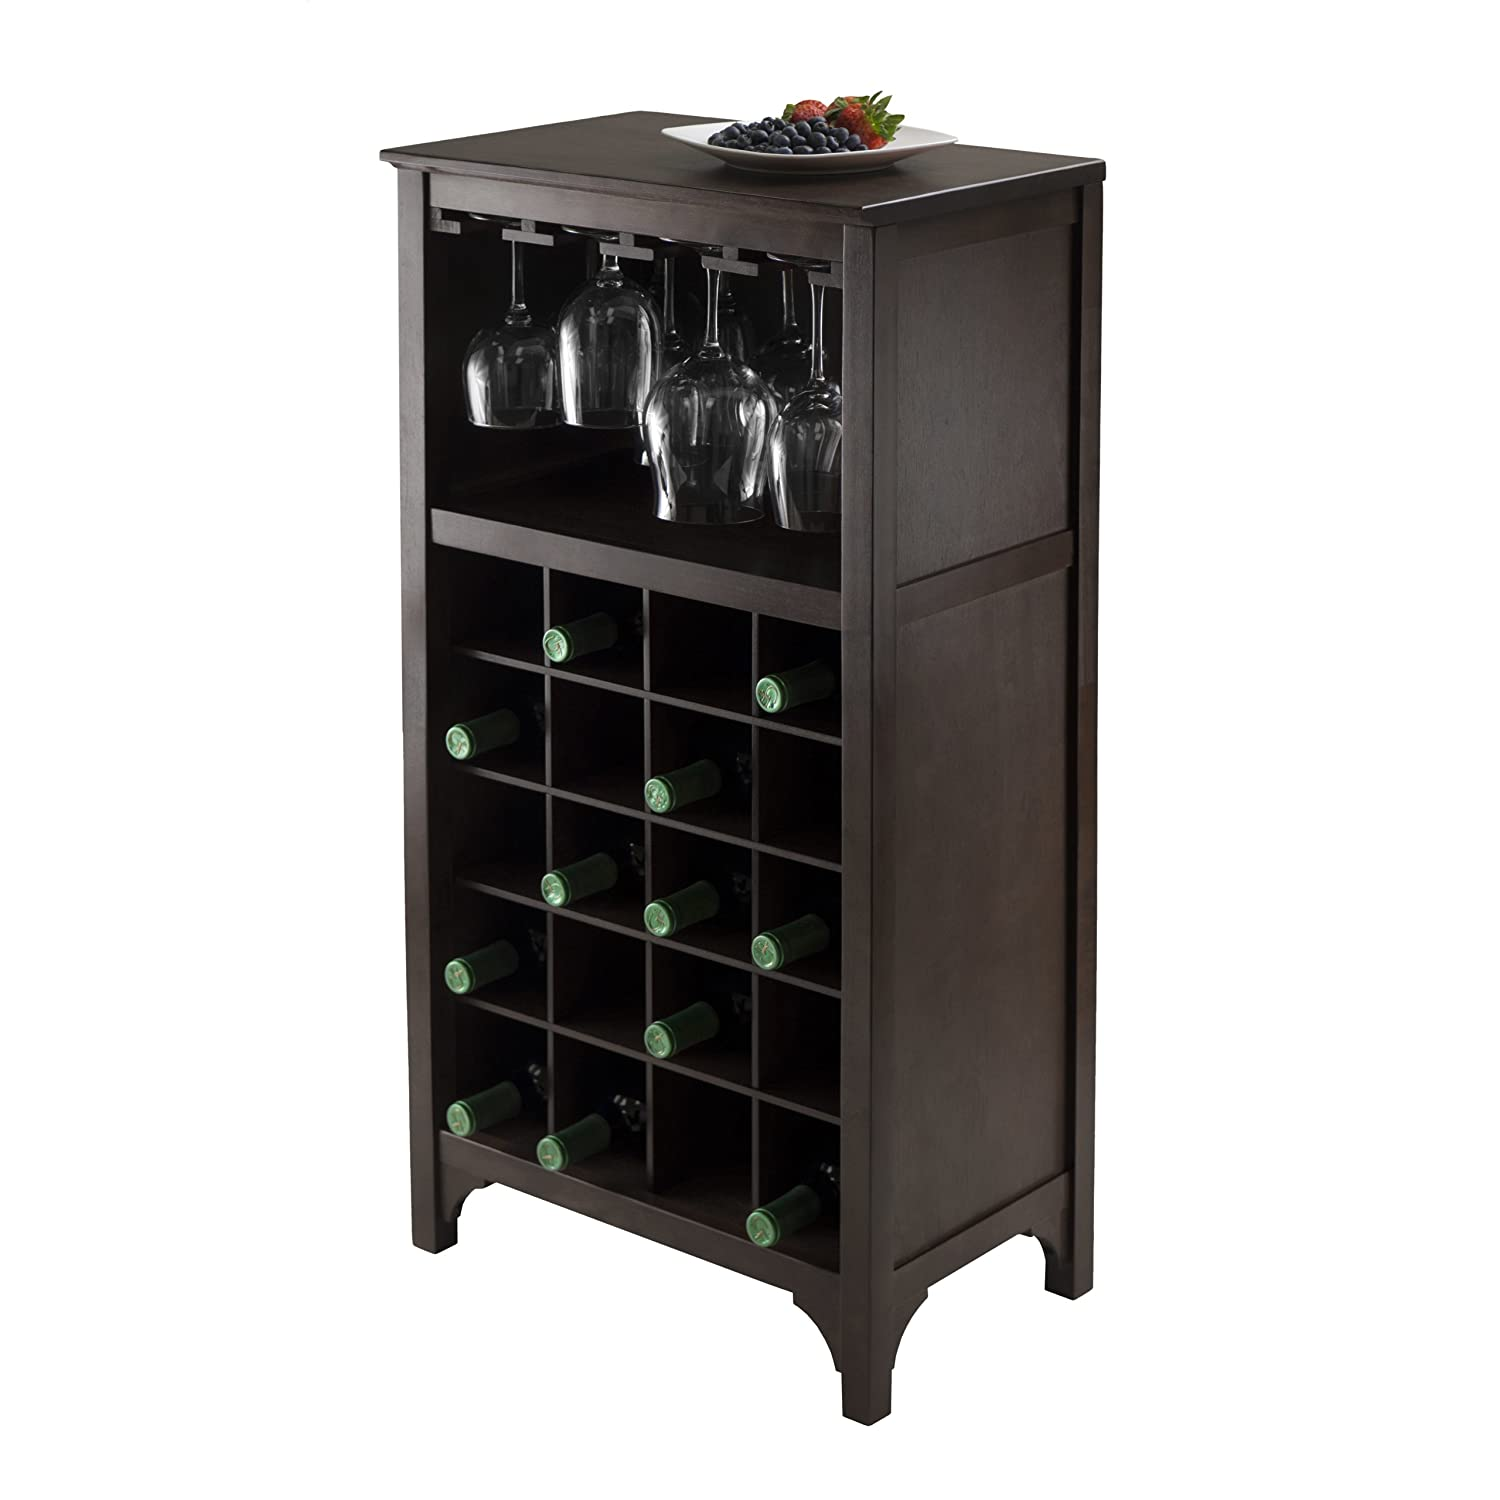 wine storage cabinet dark wood bar 12 glass 20 bottles rack holders kitchen ebay. Black Bedroom Furniture Sets. Home Design Ideas